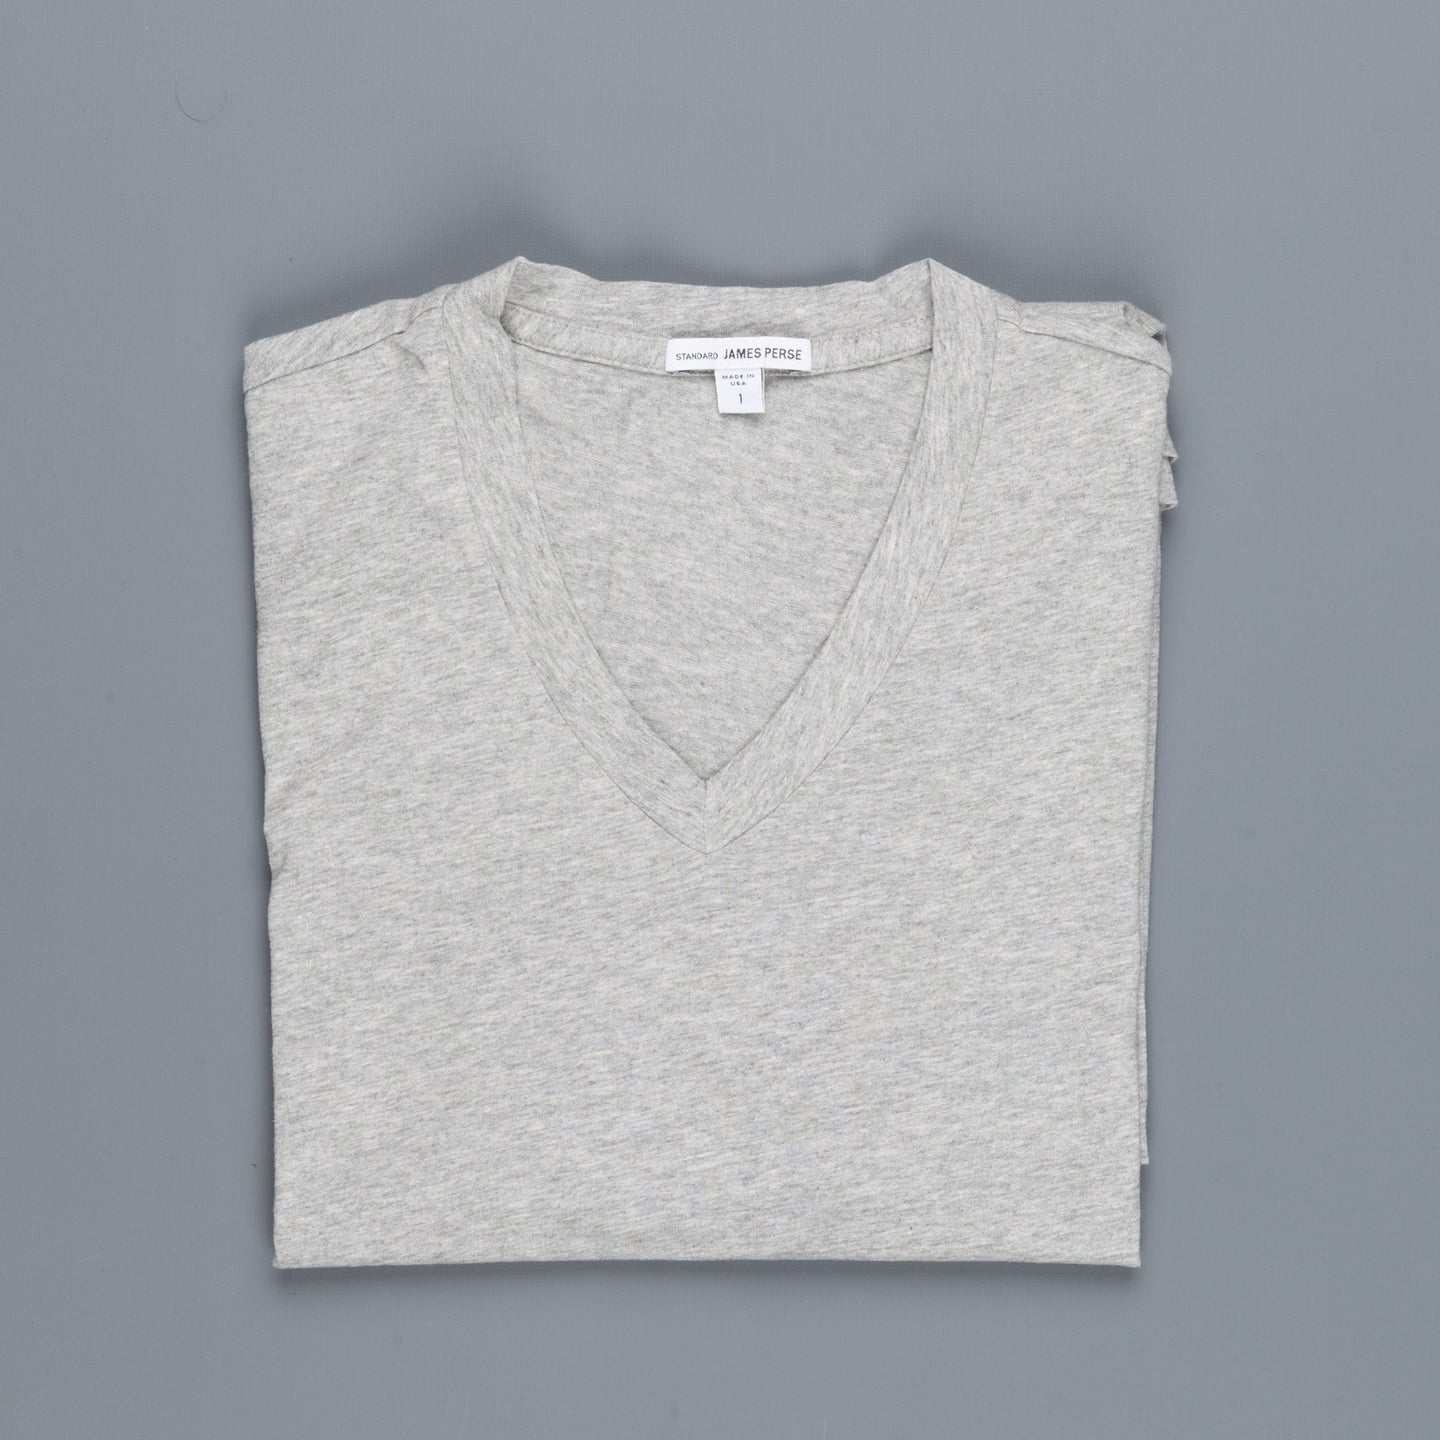 James Perse V-neck tee Heather Grey